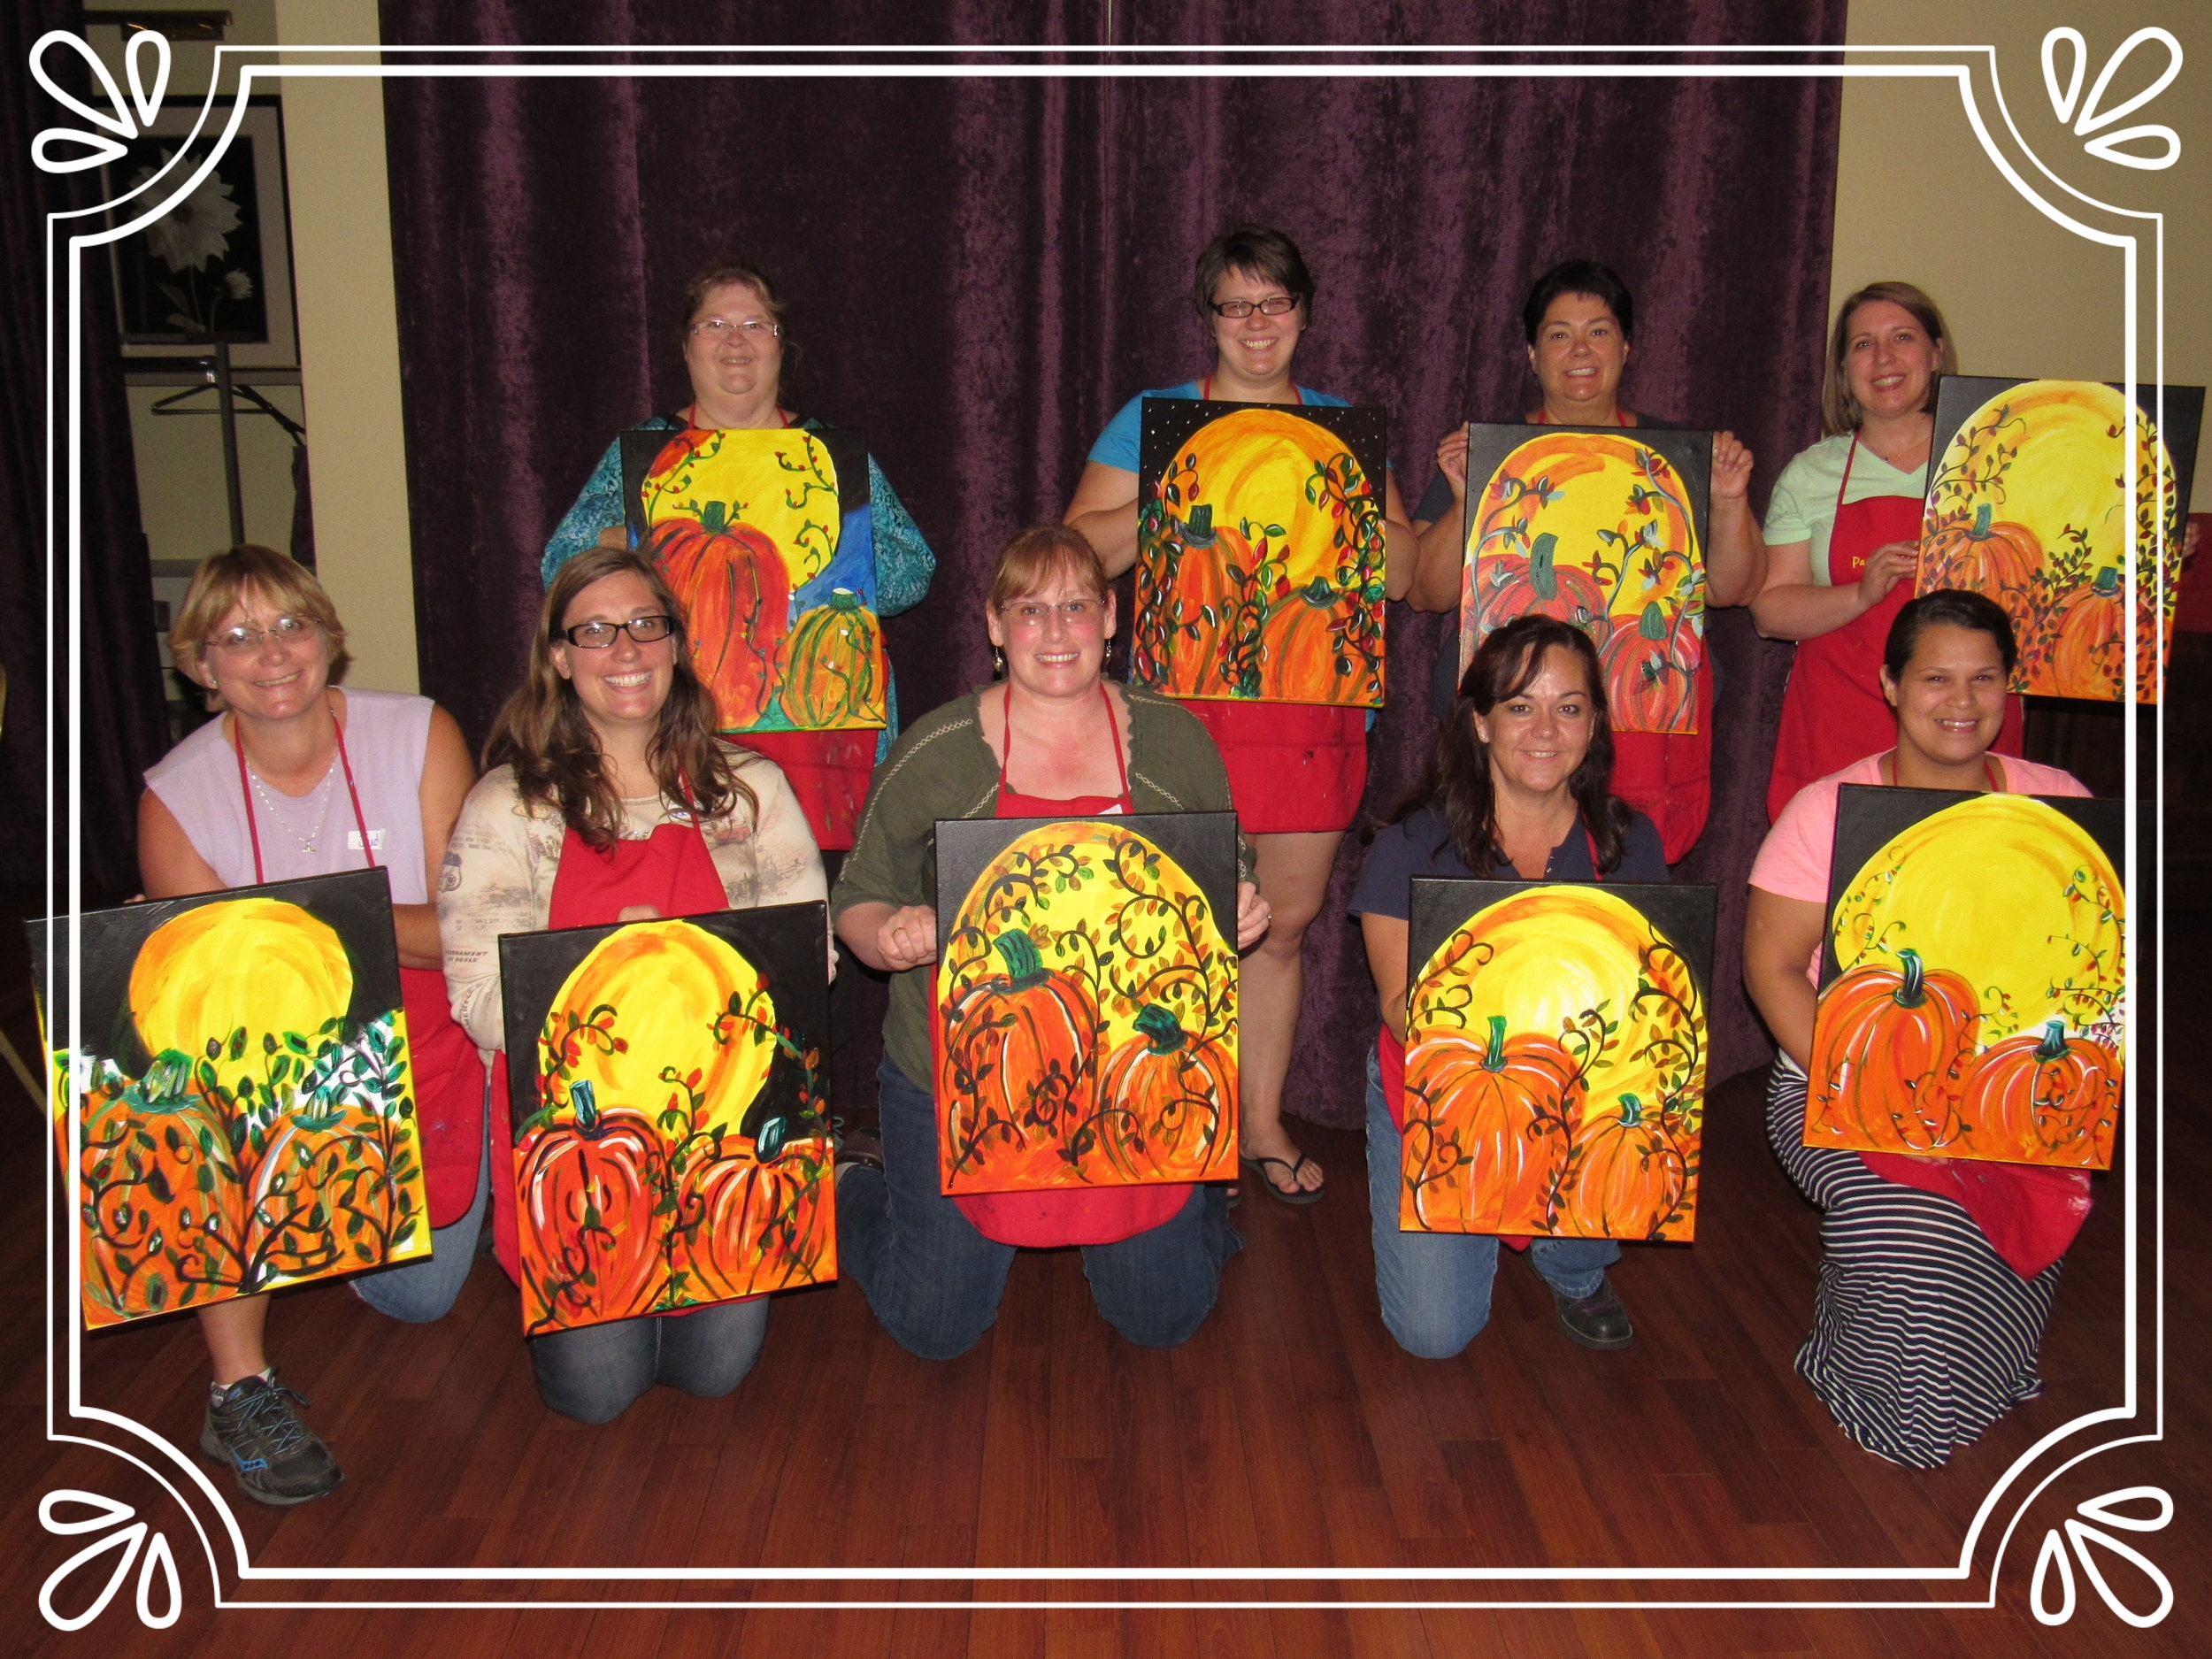 Family Night Painting Party, Willamette Valley Grill, Salem